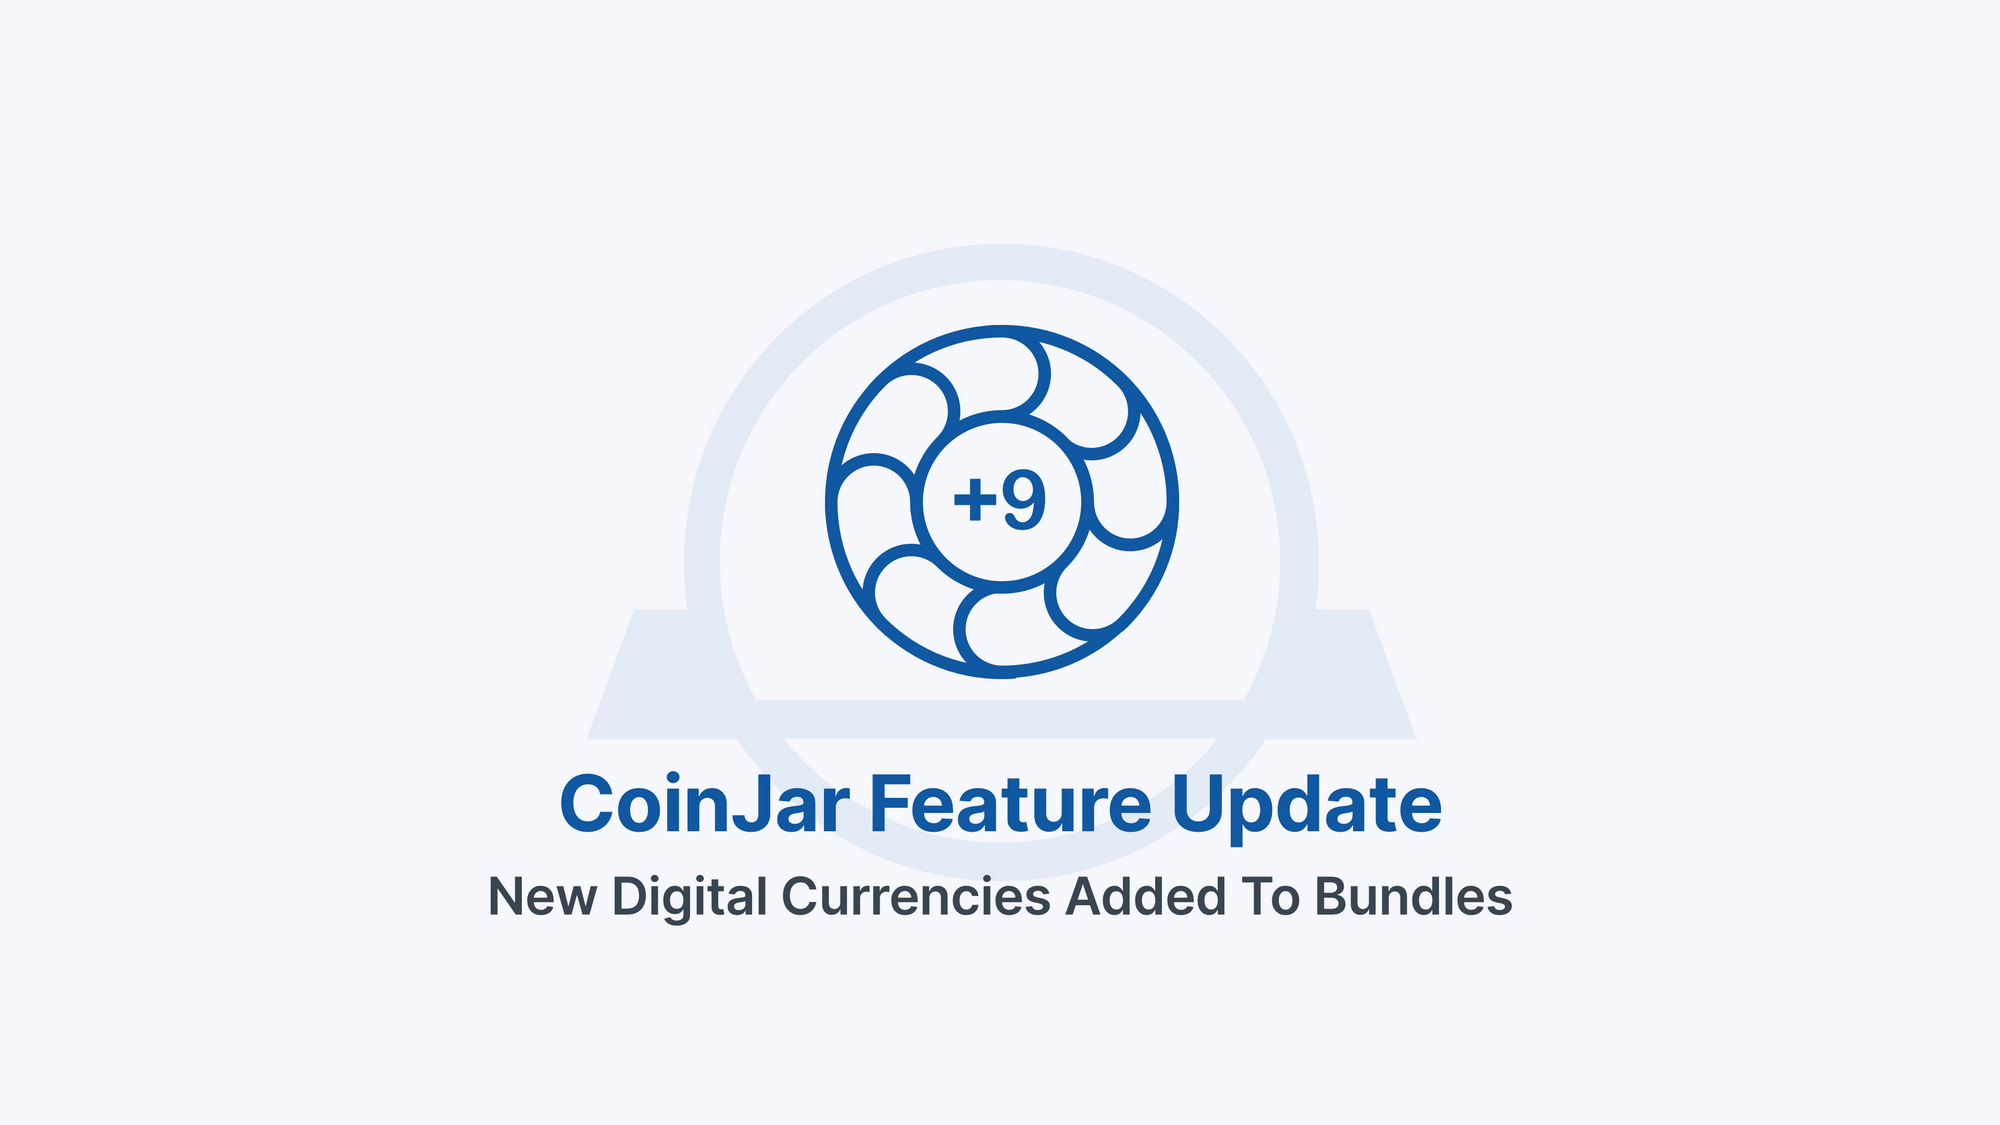 CoinJar Bundles are improving! New tokens and changes to asset allocations.